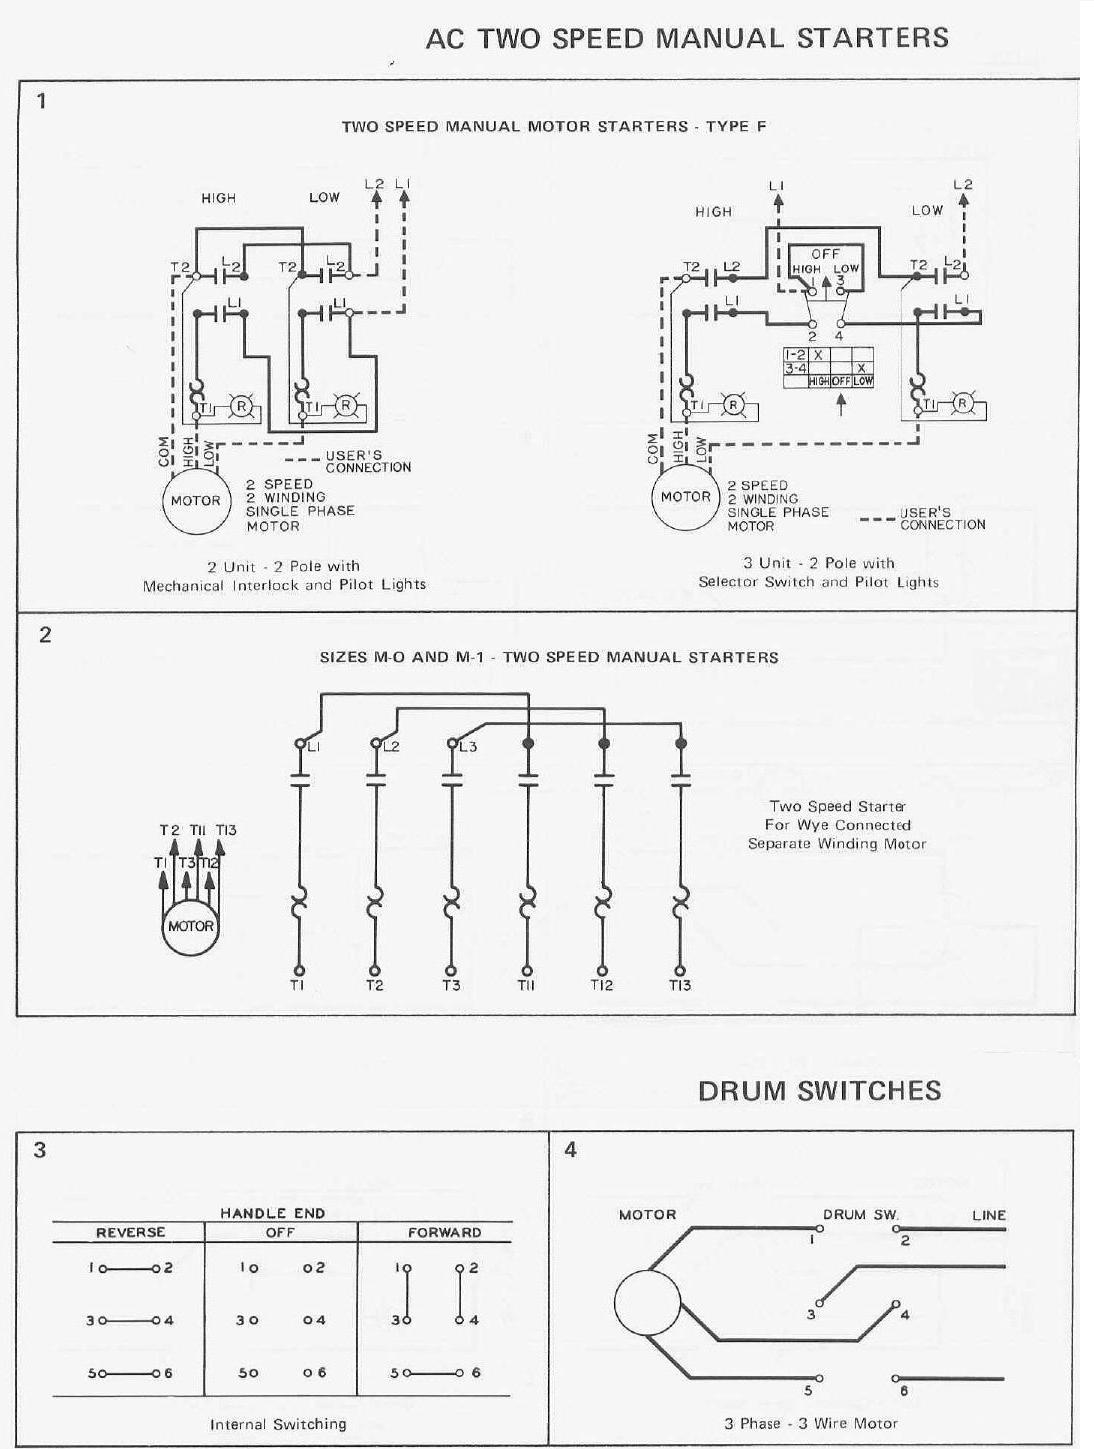 Dewhurst switch wiring diagram manual 123freewiringdiagramwnload asfbconference2016 Gallery